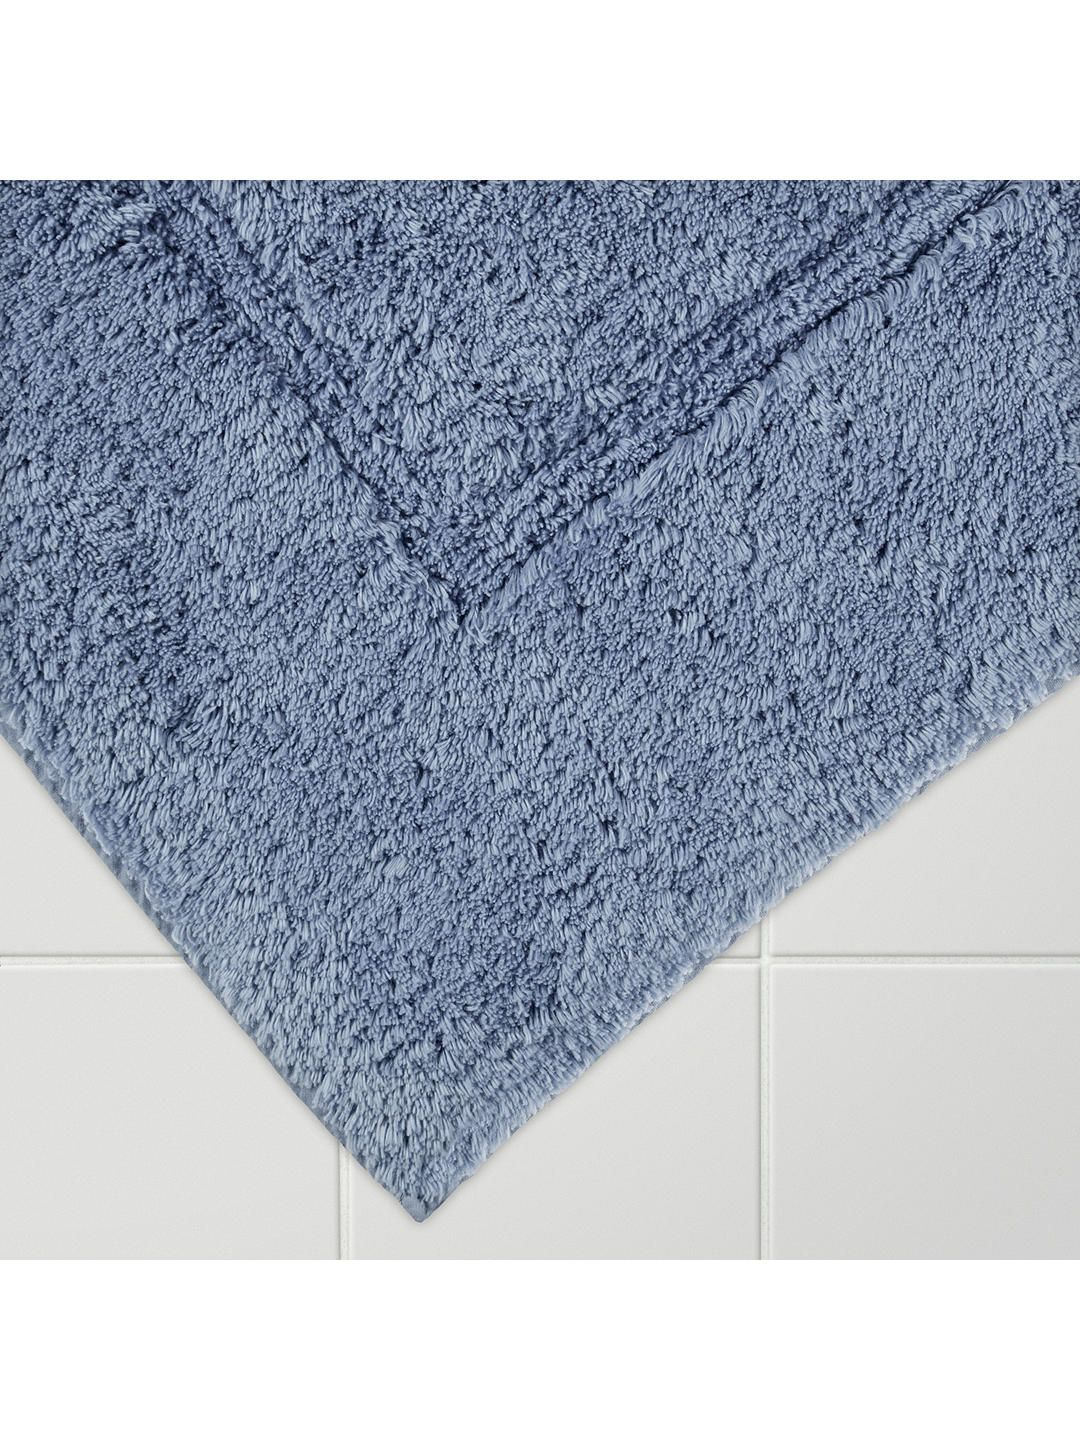 John Lewis Partners Large Deep Pile Bath Mat With Mircofresh Technology 60 X 100cm Carbon Grey Bath Mat Egyptian Cotton Towels John Lewis